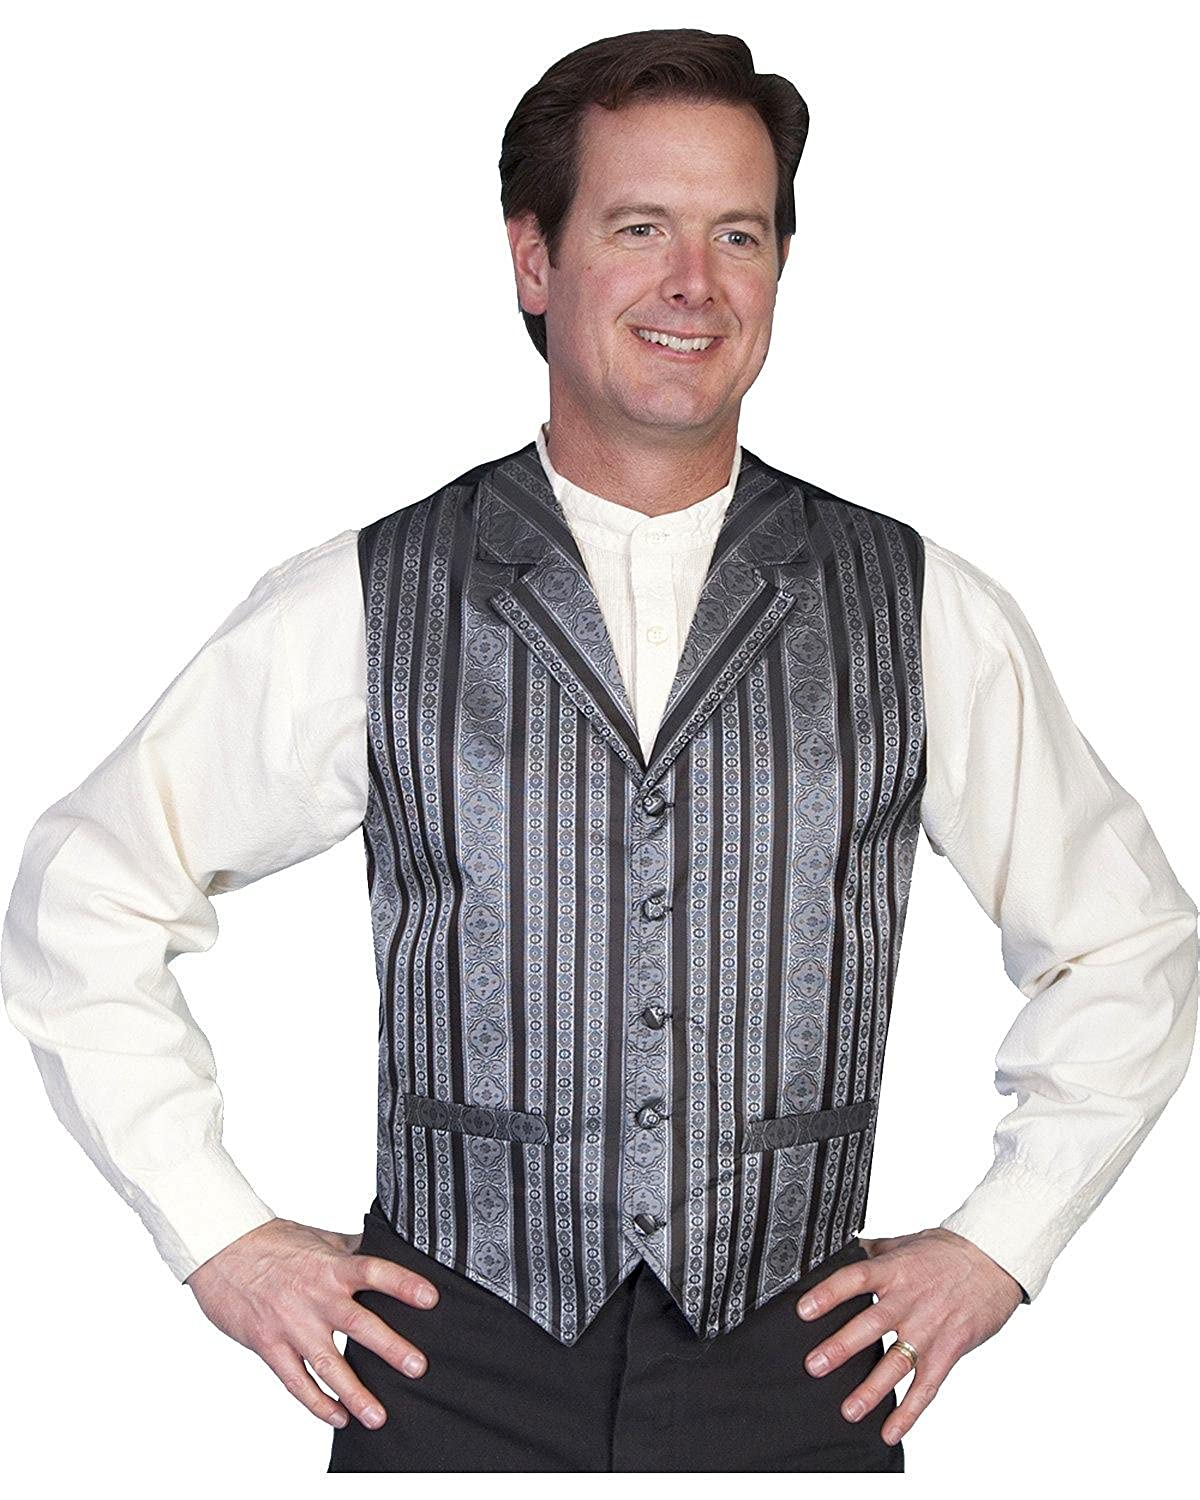 Men's Vintage Inspired Vests Rangewear By Scully Mens Rangewear Waverly Vest Big And Tall - Rw167x Blk $64.00 AT vintagedancer.com